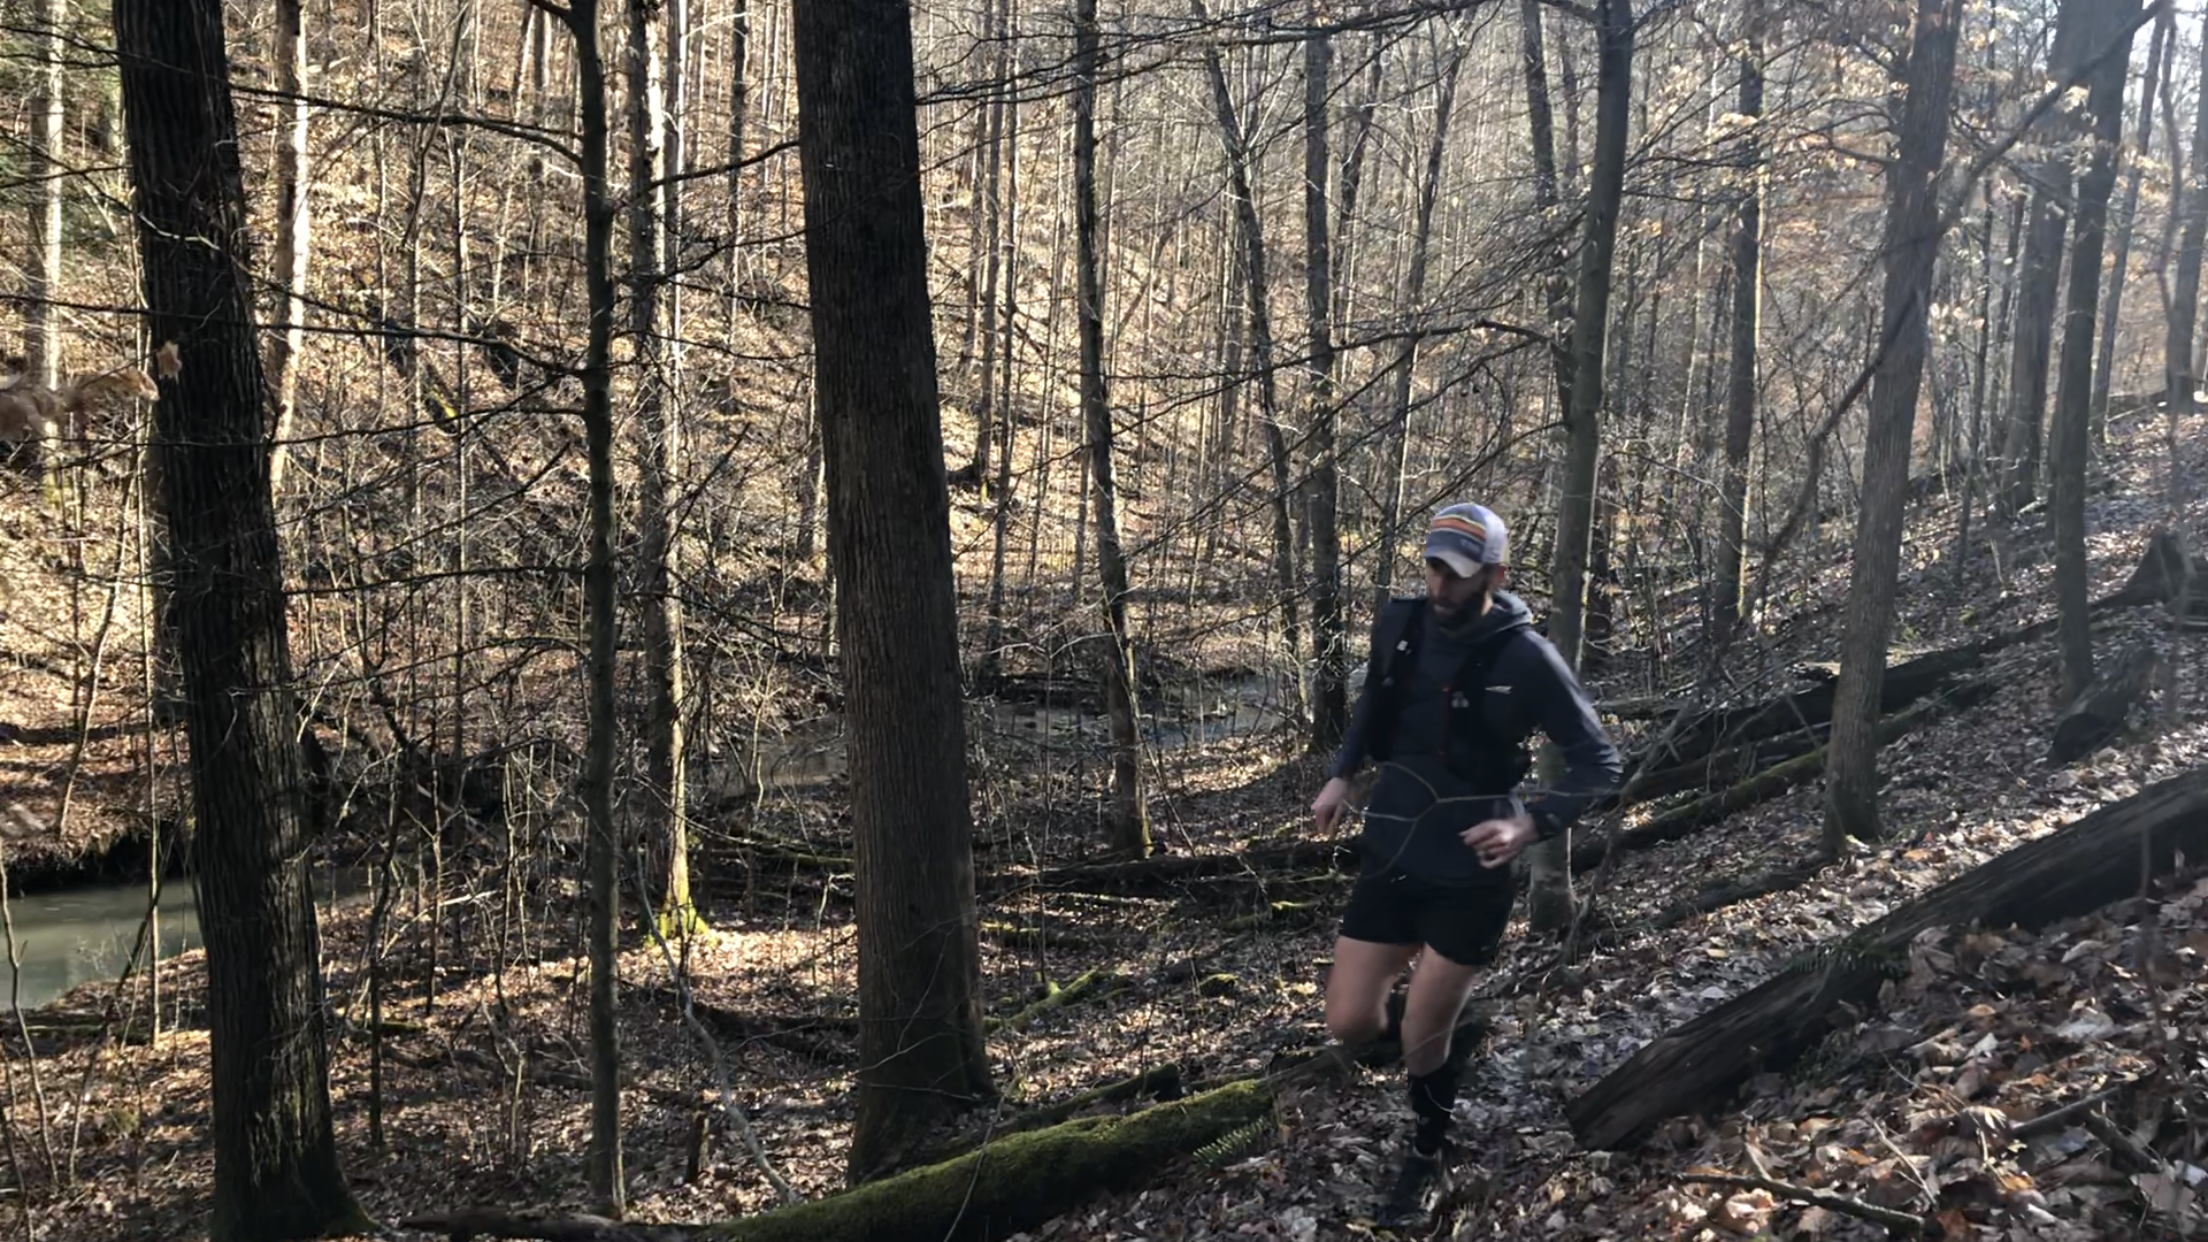 I won't soon forget this run or what I learned in that forest.